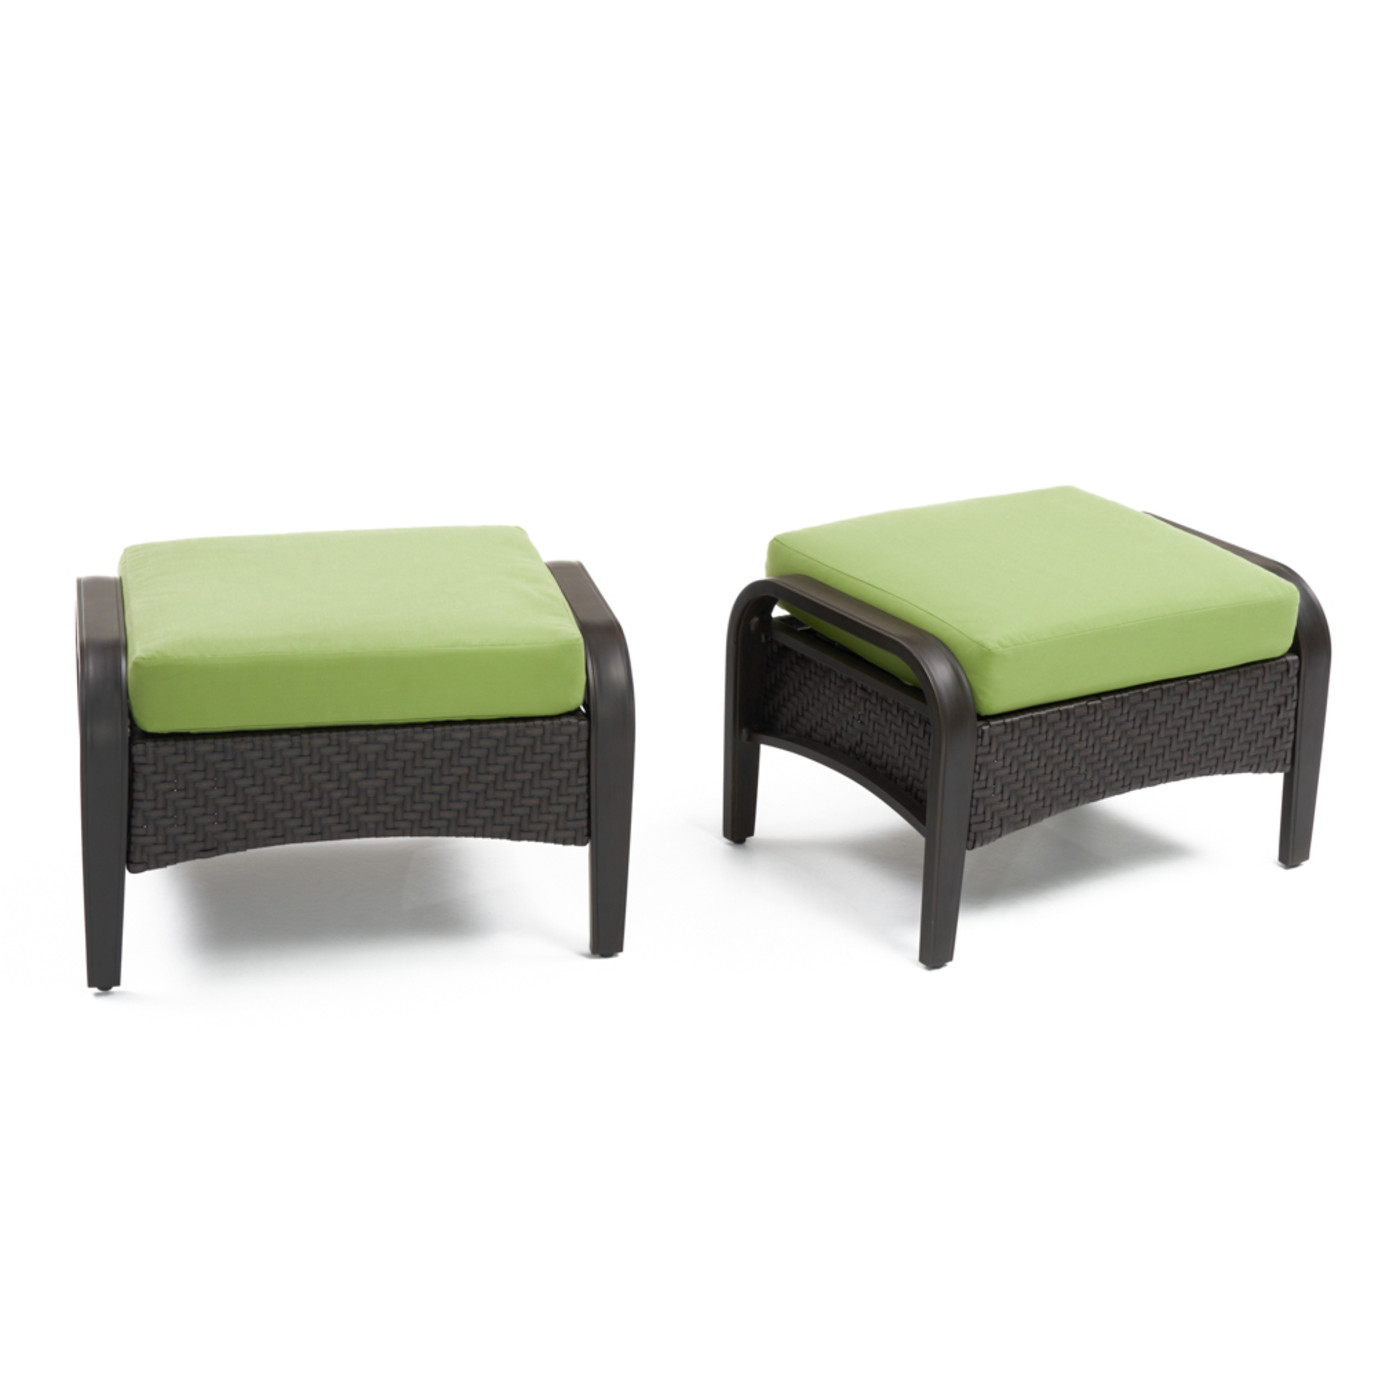 Barcelo™ Club Ottomans - Ginkgo Green